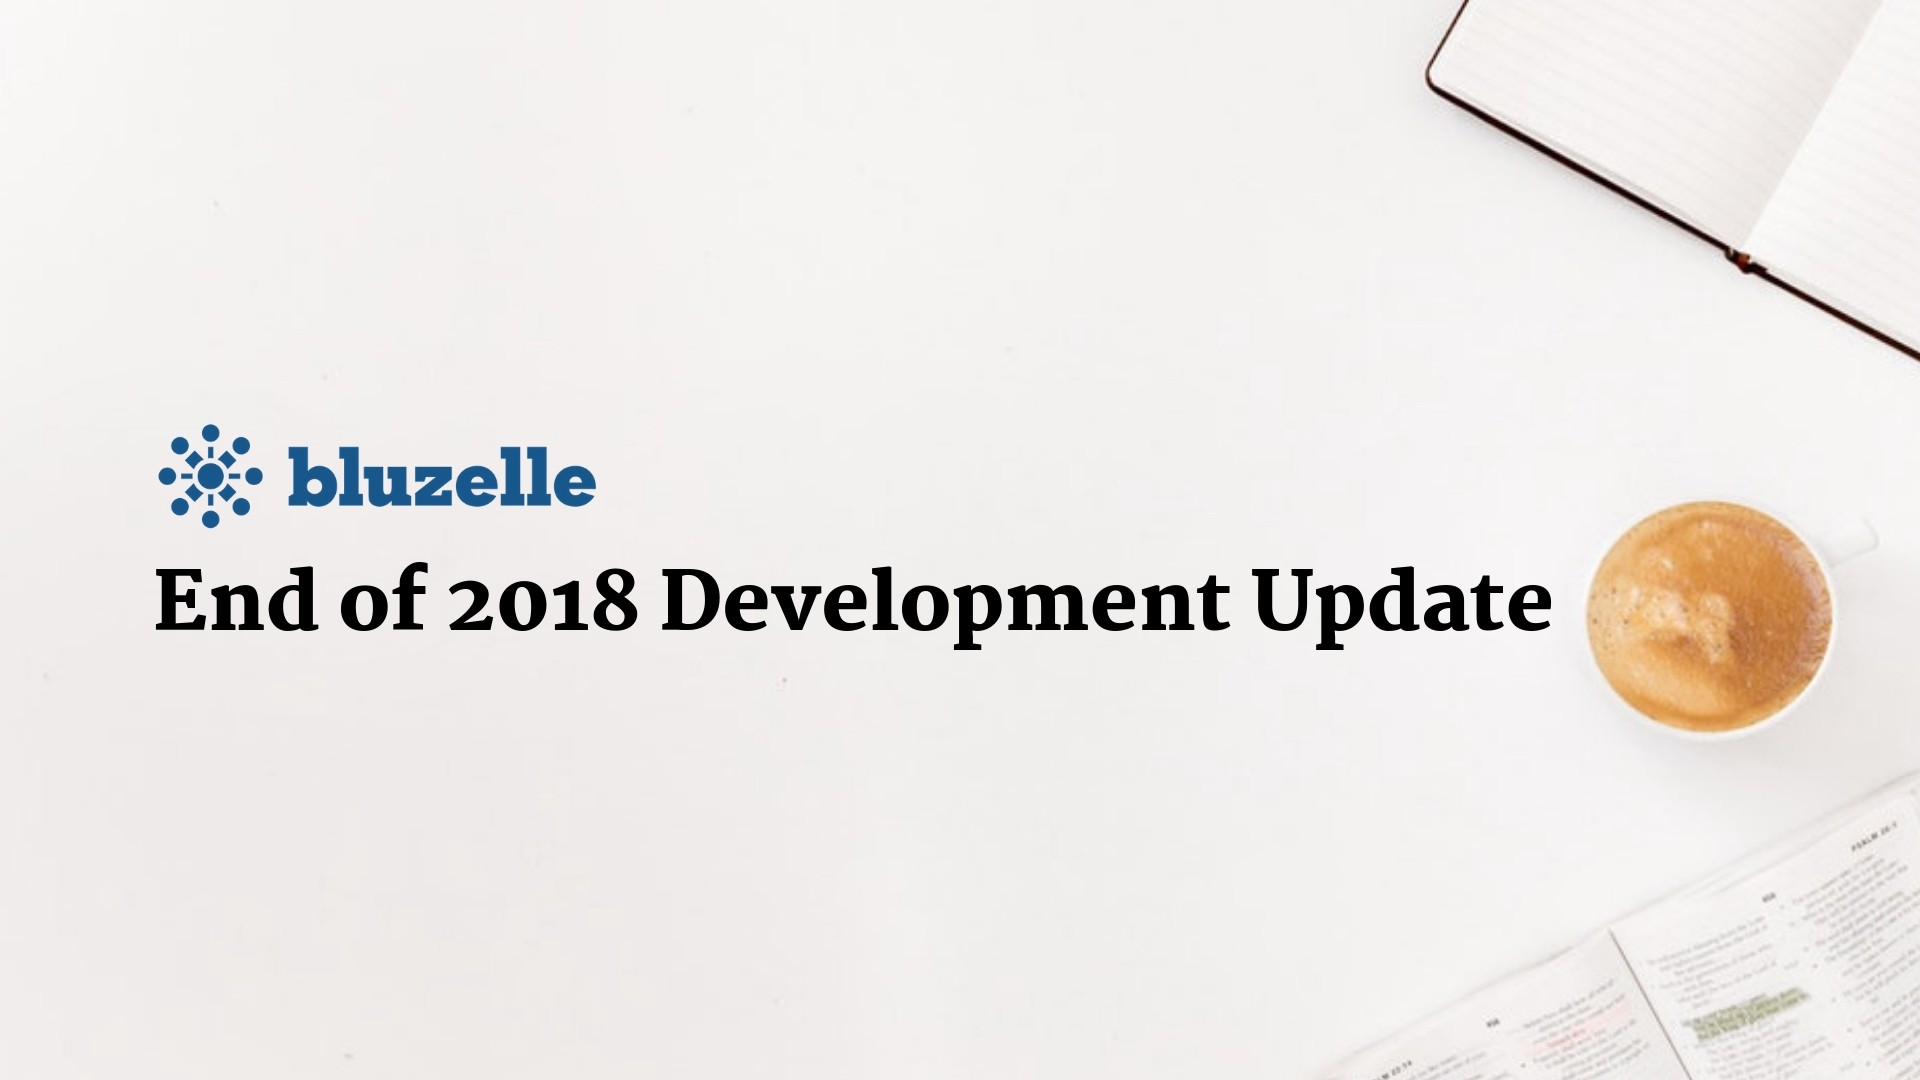 Bluzelle End of 2018 Development Update - The Blueprint by